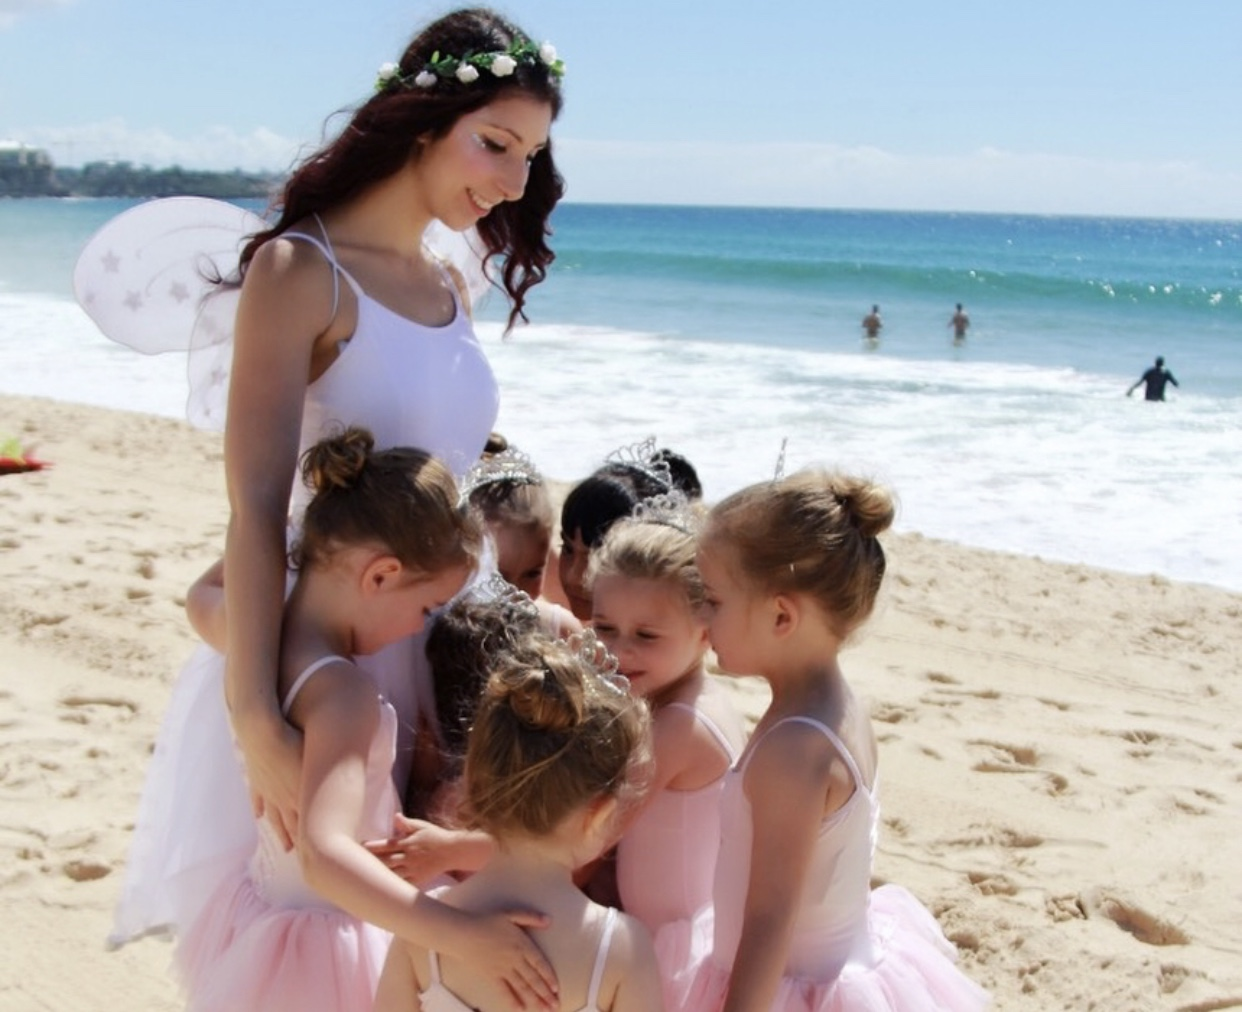 babyballet blog: Twinkle and Teddy Land in Sydney. babyballet preschool dance classes are available for boys and girls for six months to 6 years old across the UK, Australia and New Zealand